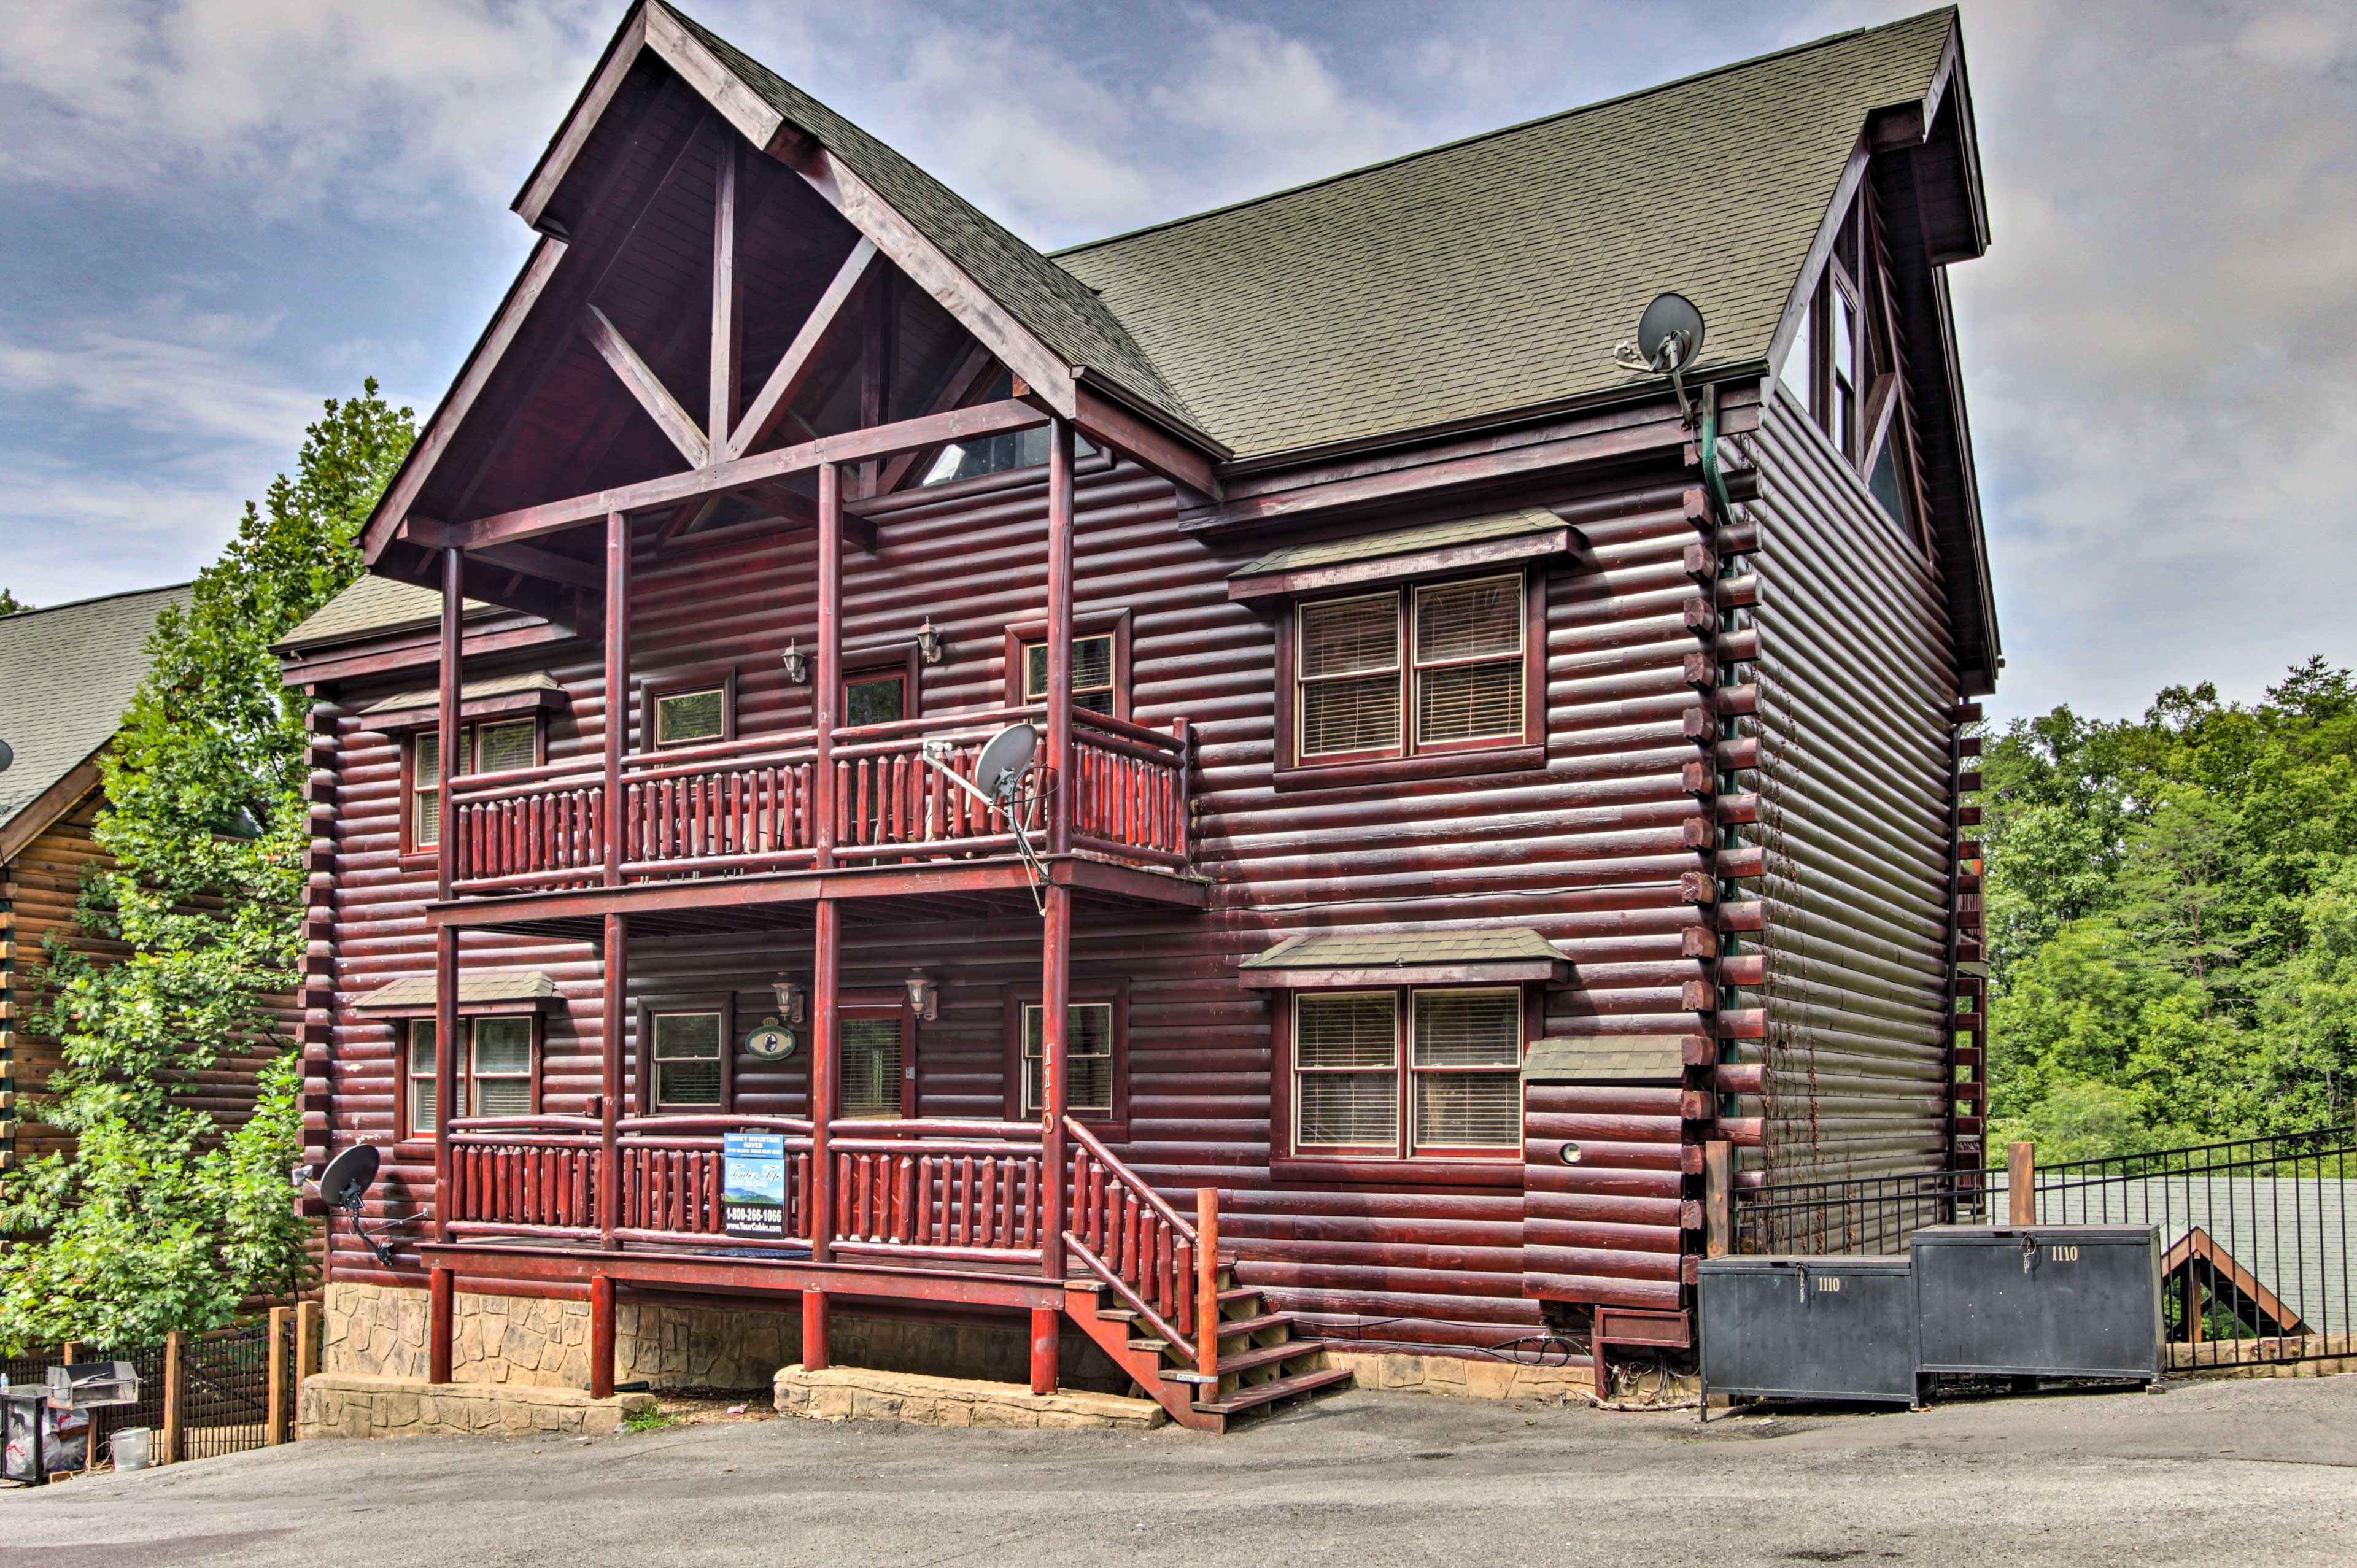 Looking to getaway on a family vacation? Come stay at this vacation rental!